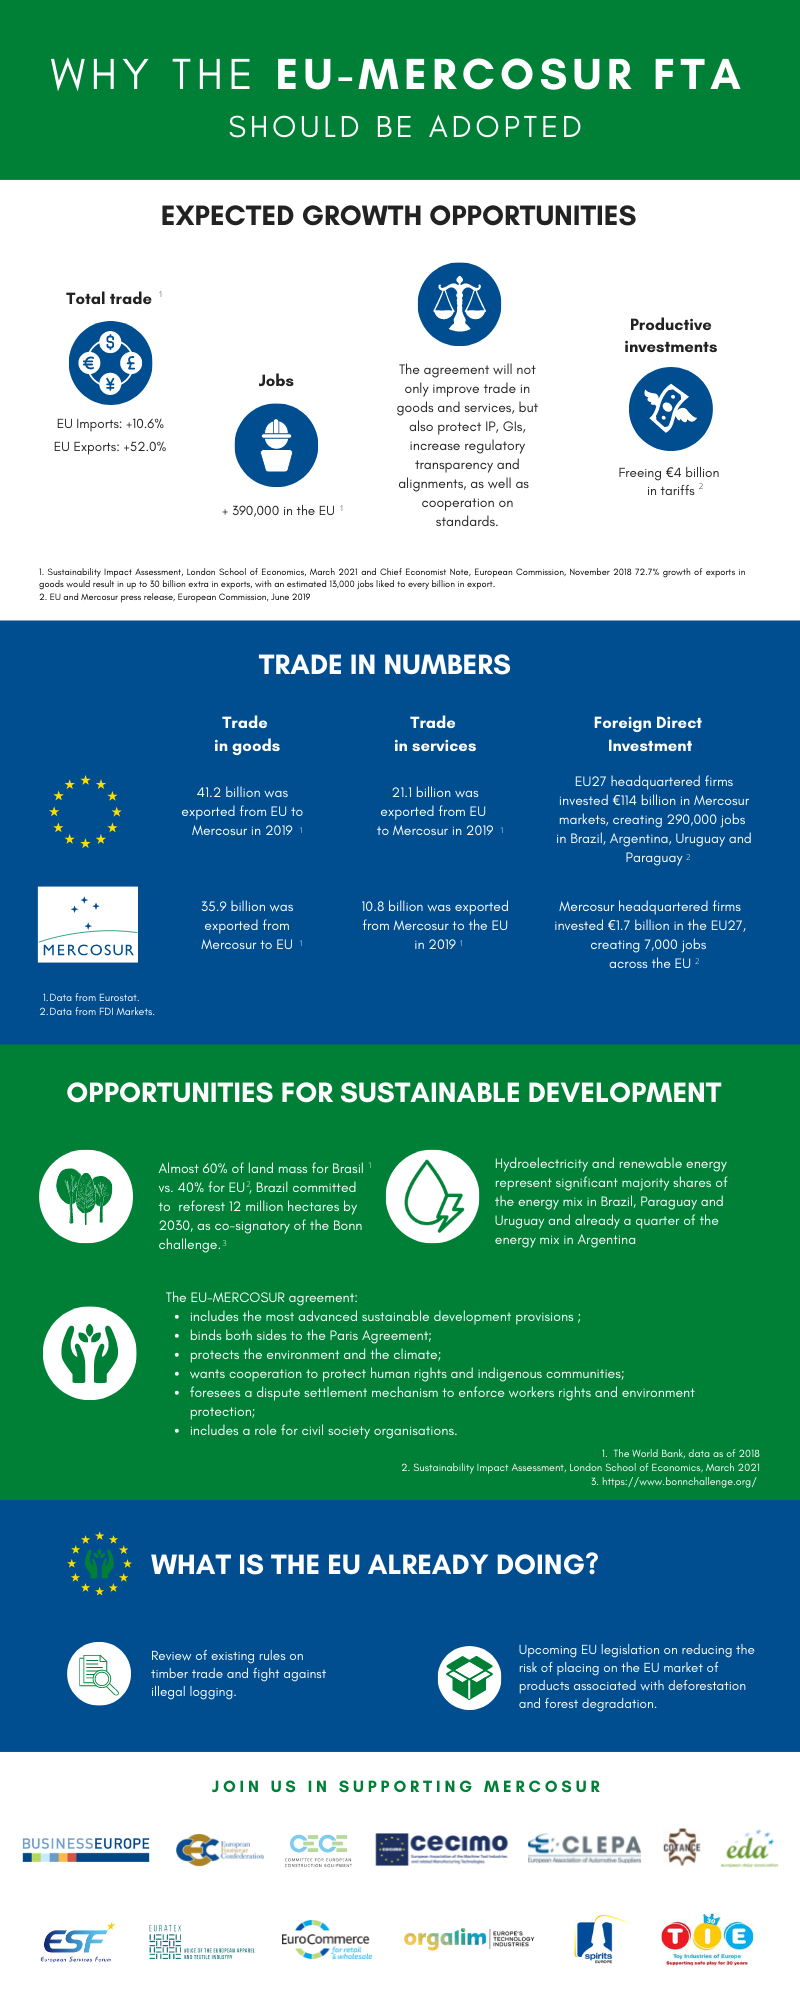 Why the EU-Mercosur FTA should be adopted - Infographic